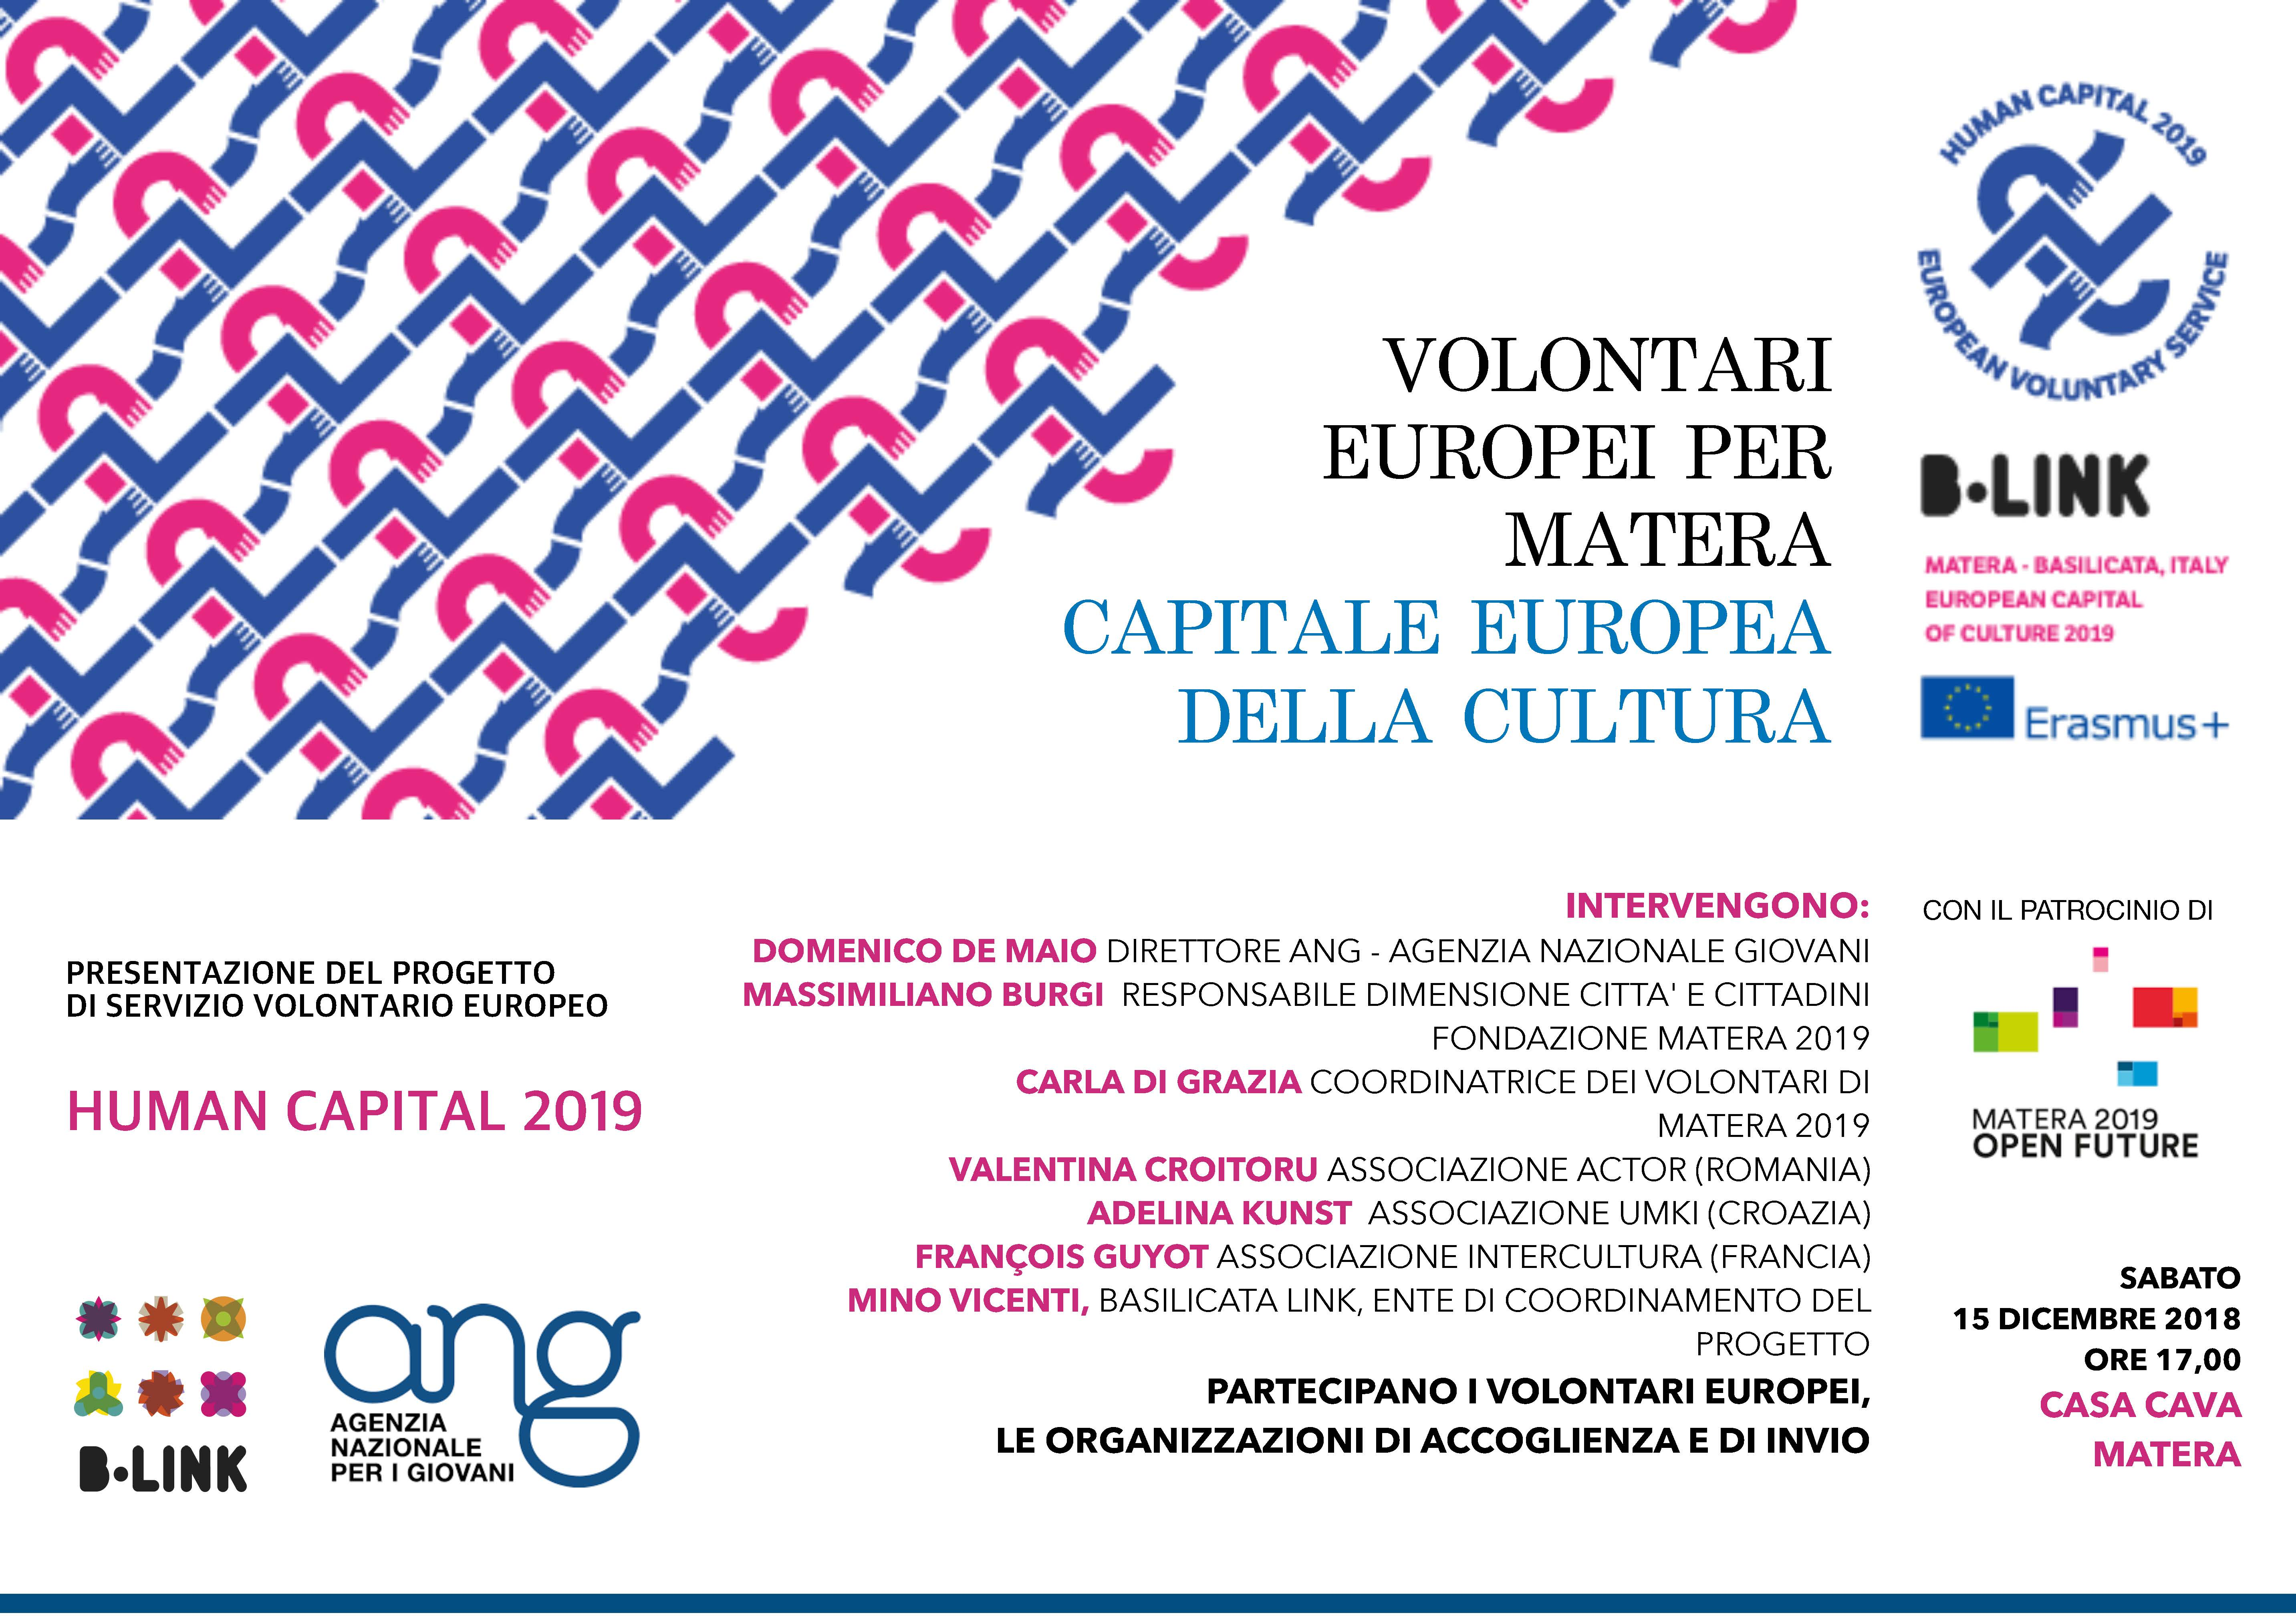 Human Capital 2019 _ Matera_ Casa Netural.